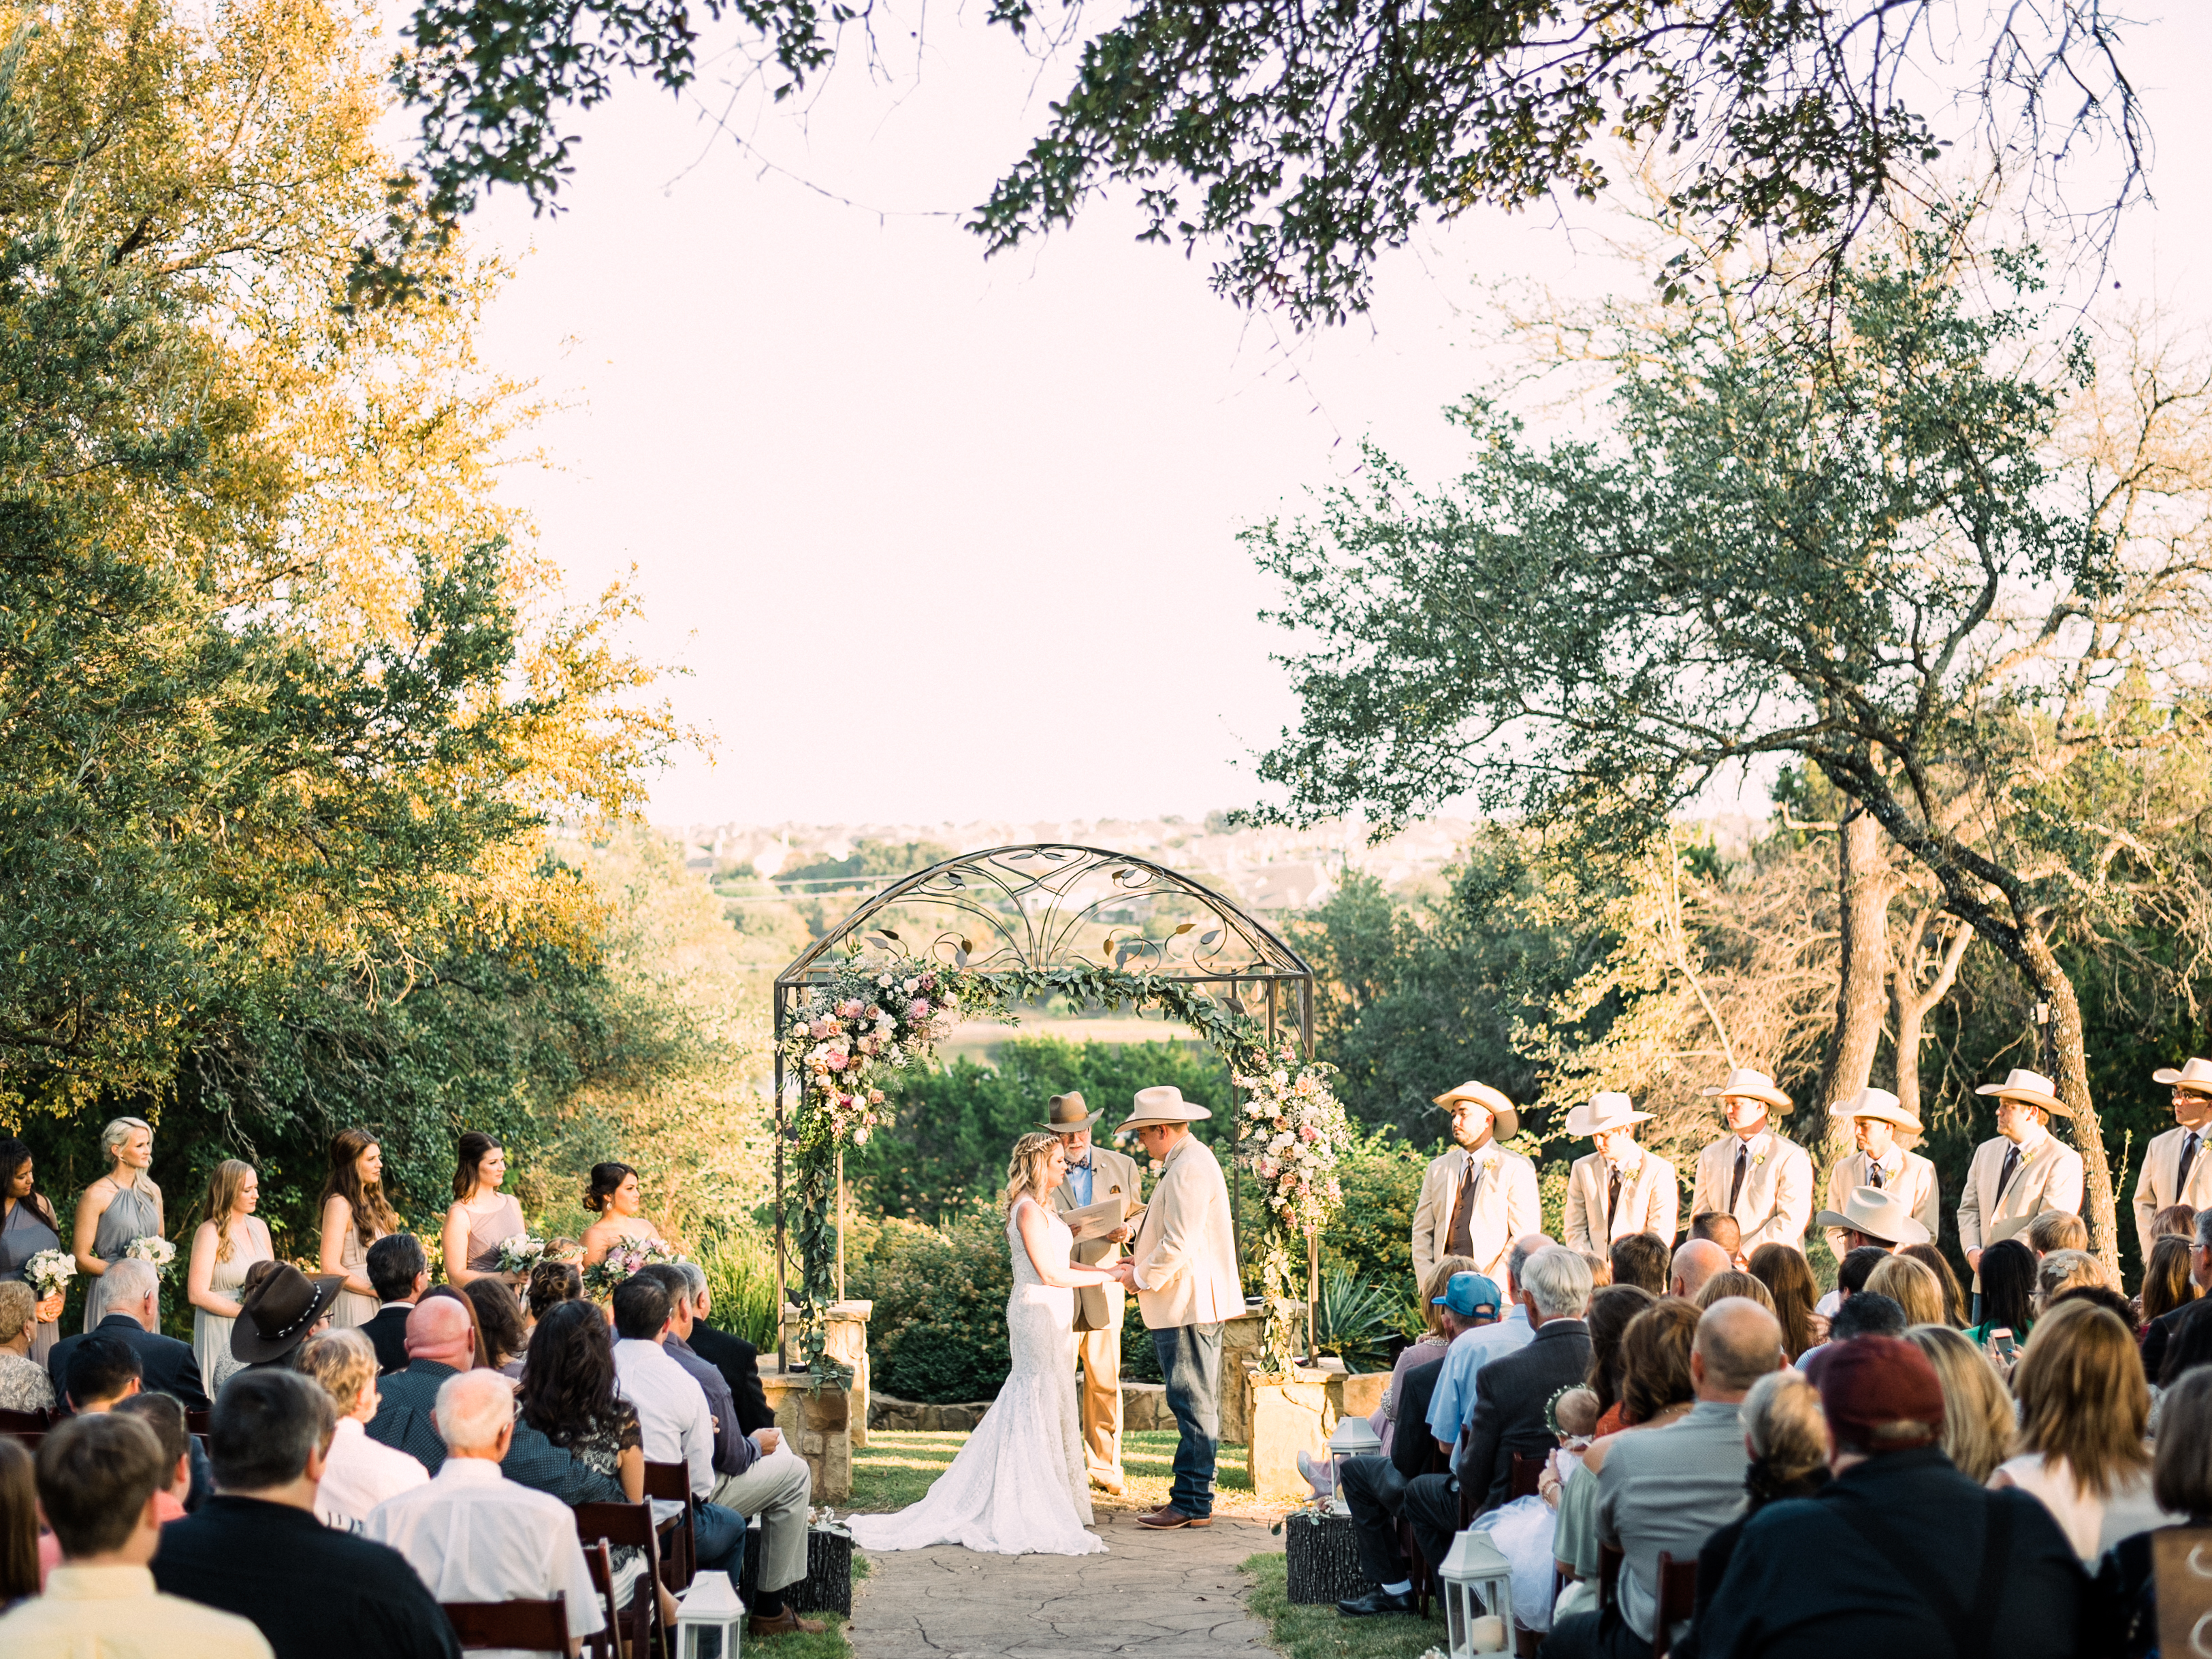 A bride and groom face each other while they say their vows during their sunny, outdoor wedding ceremony in Georgetown, Texas.